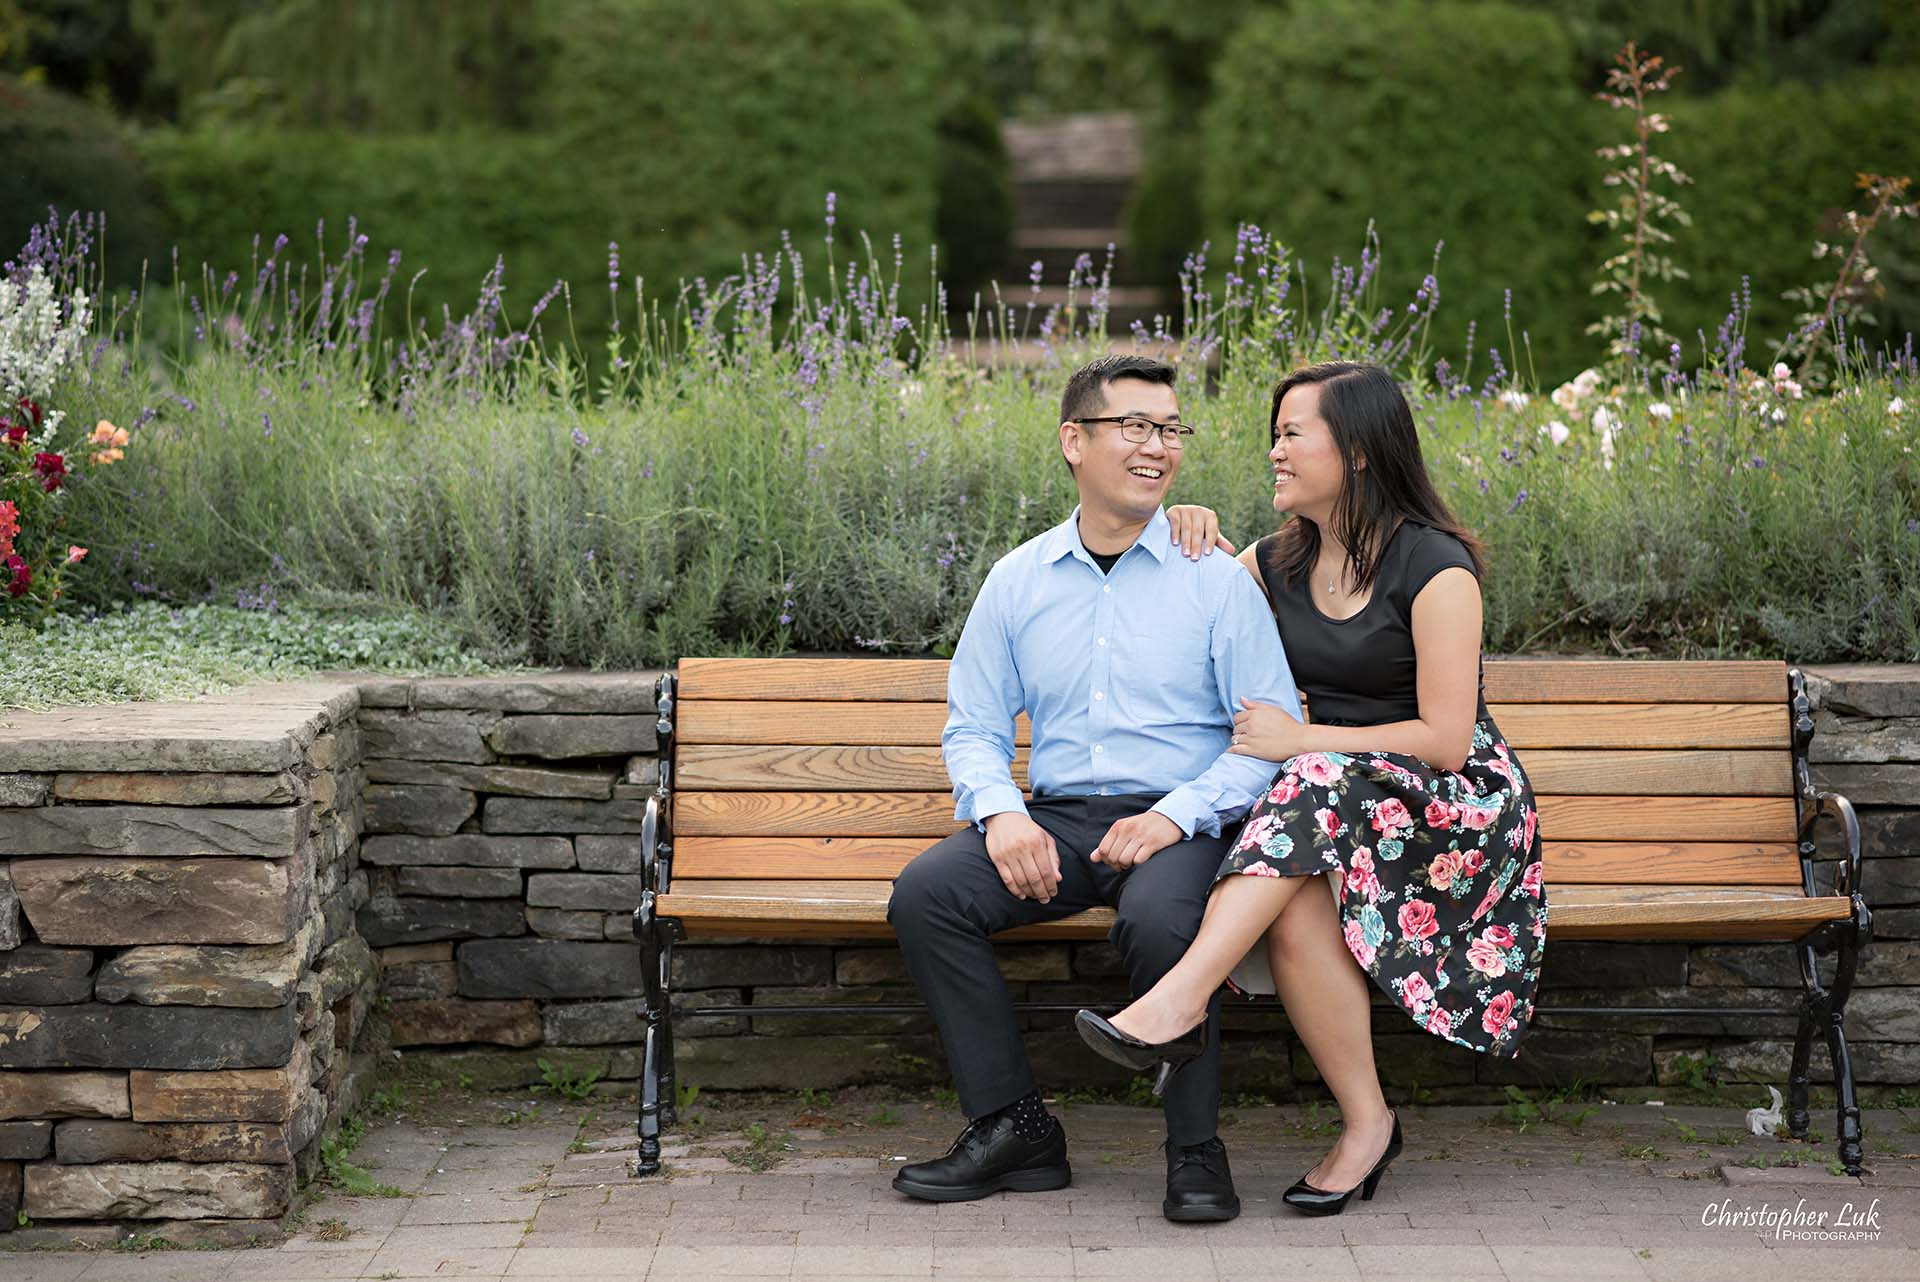 Christopher Luk Toronto Wedding Family Event Corporate Commercial Headshot Photographer Edith Jeff Engagement Session Alexander Muir Memorial Gardens Park MidTown Photo Location Natural Candid Photojournalistic - Bride and Groom Bench Sitting Talking Laughing